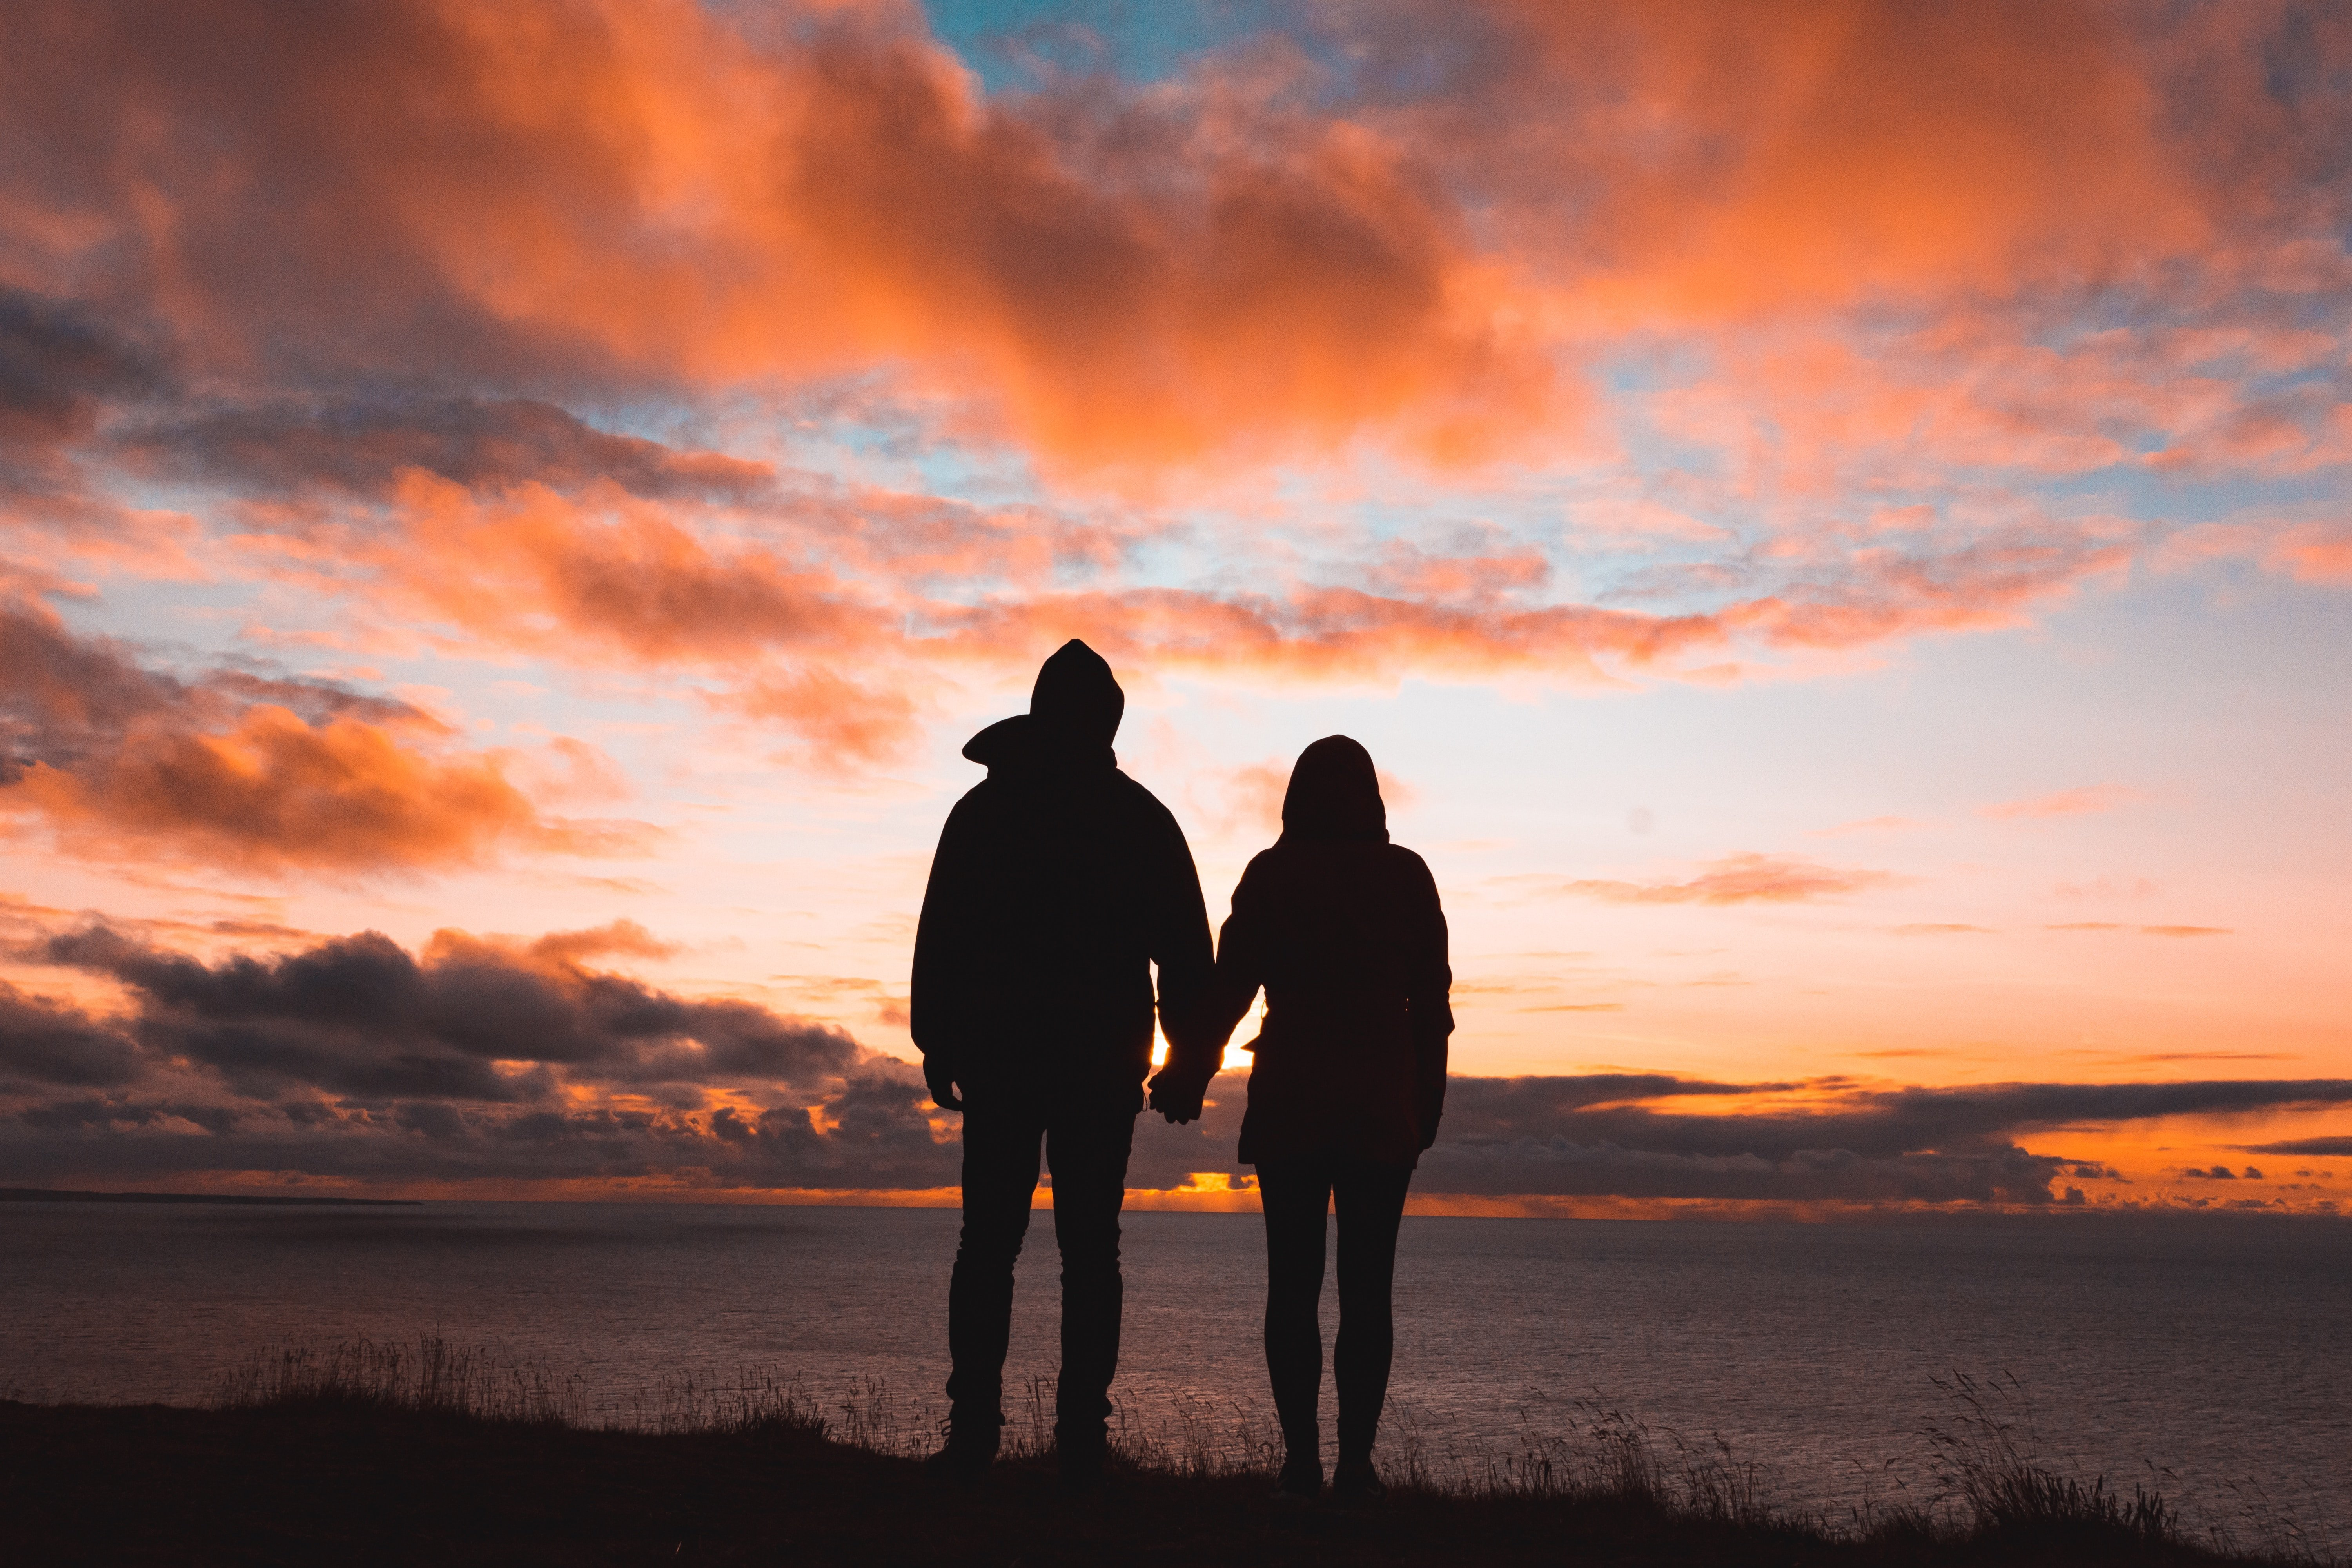 A picture of a couple at sunset. | Source: Unsplash.com